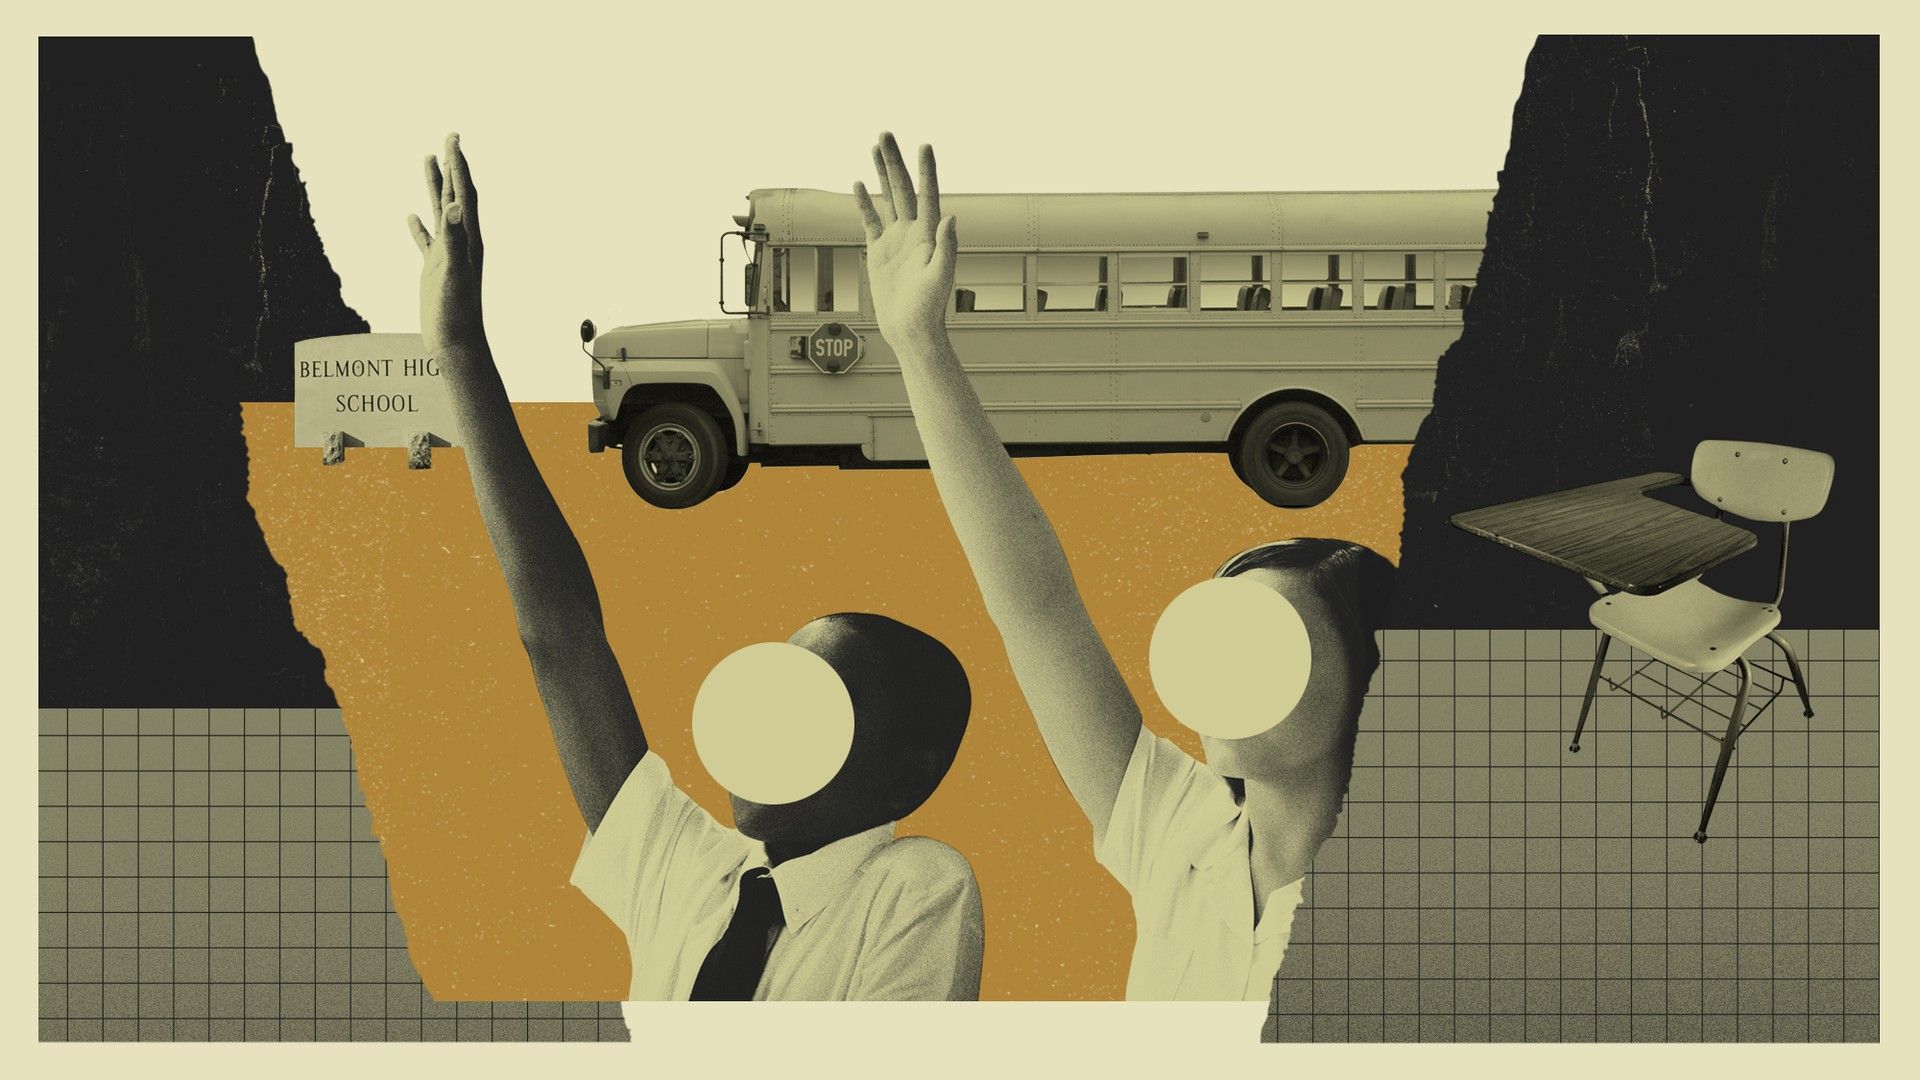 A photo illustration showing a school bus and two obscured students